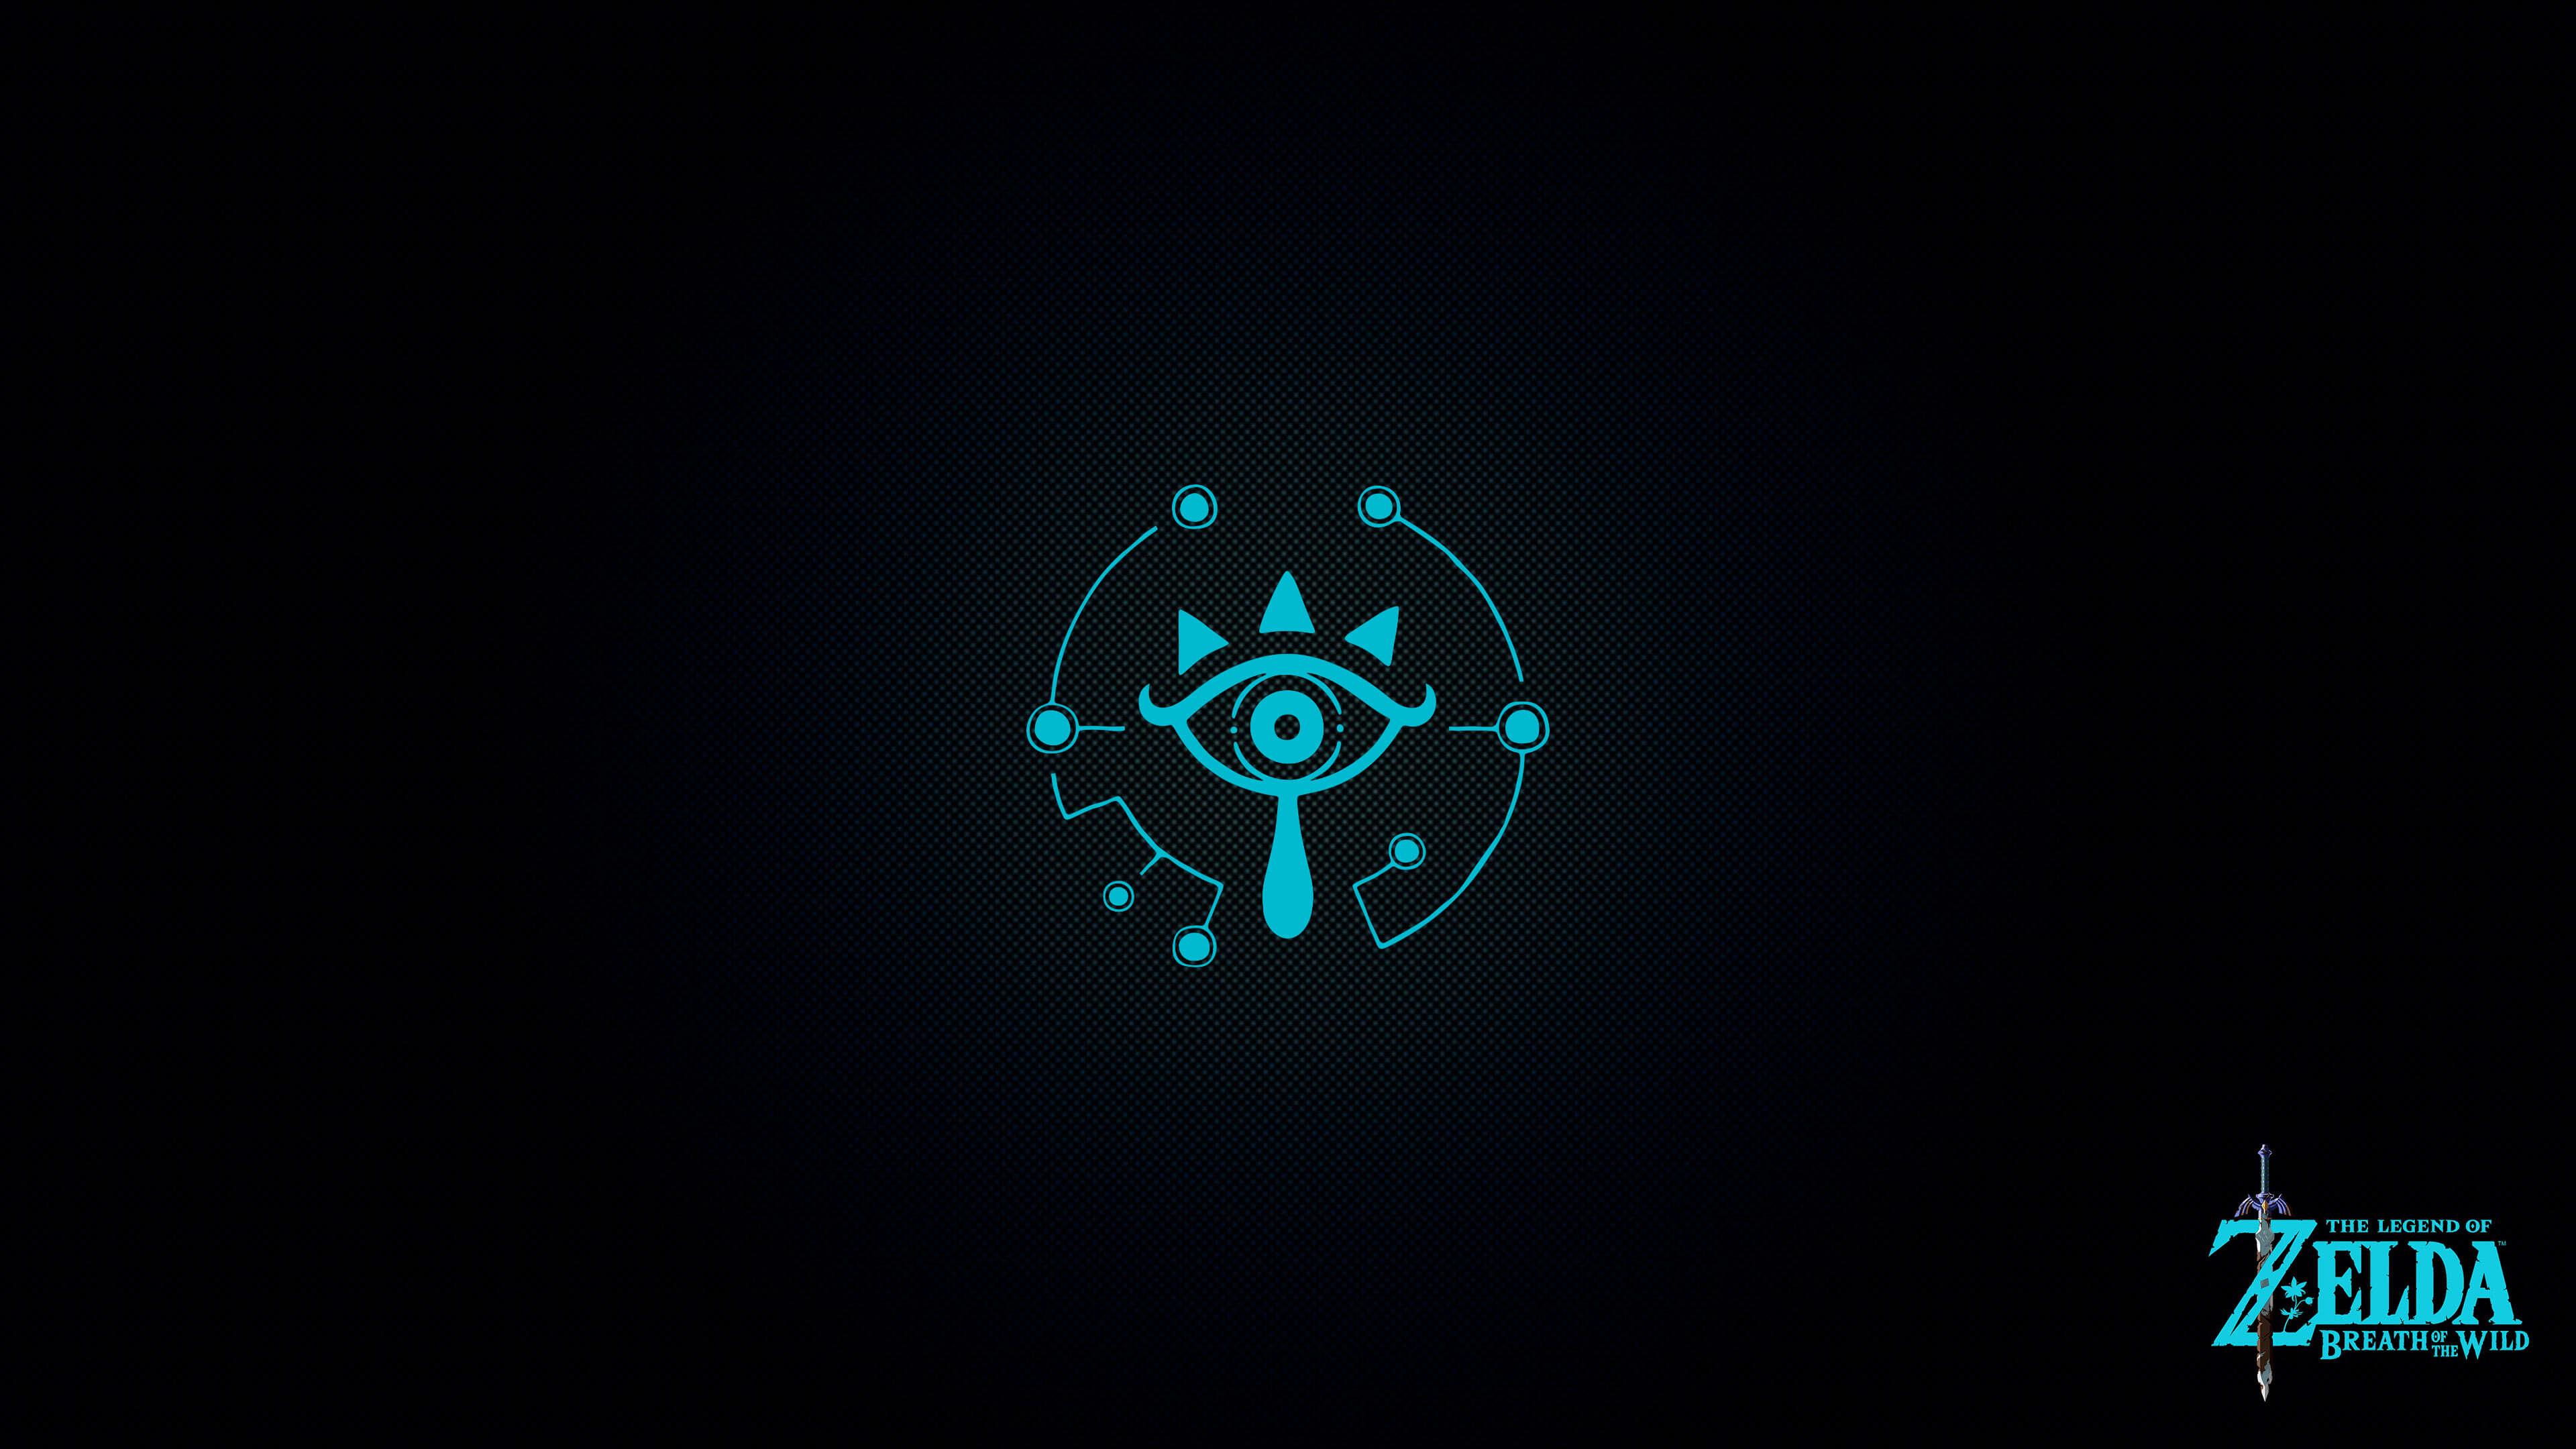 Legend Of Zelda Breath Of The Wild Eye Symbol Uhd 4k Wallpaper